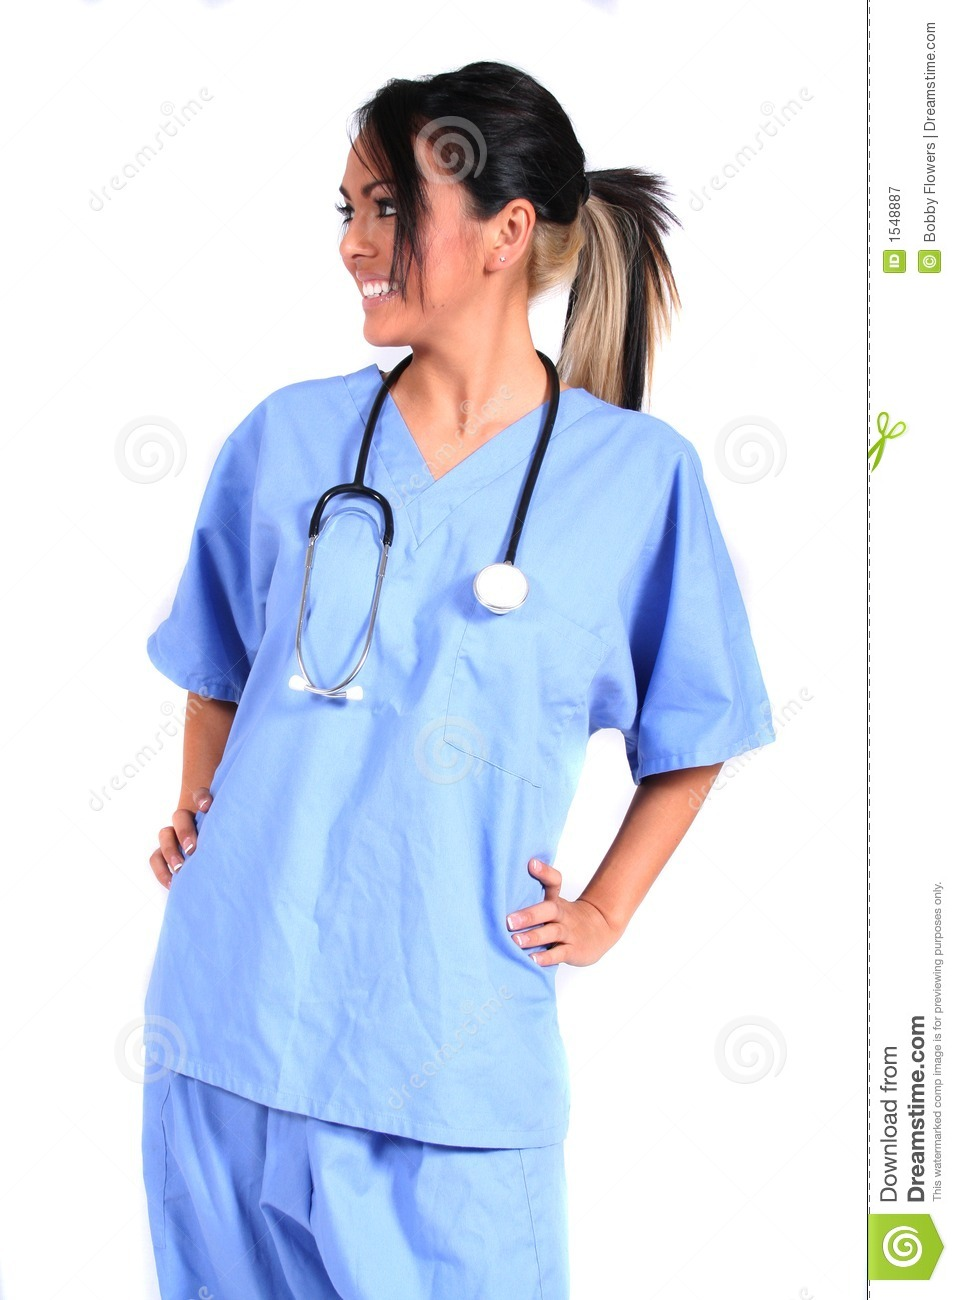 Cute Female Nurse, Doctor, Medical Worker Royalty Free